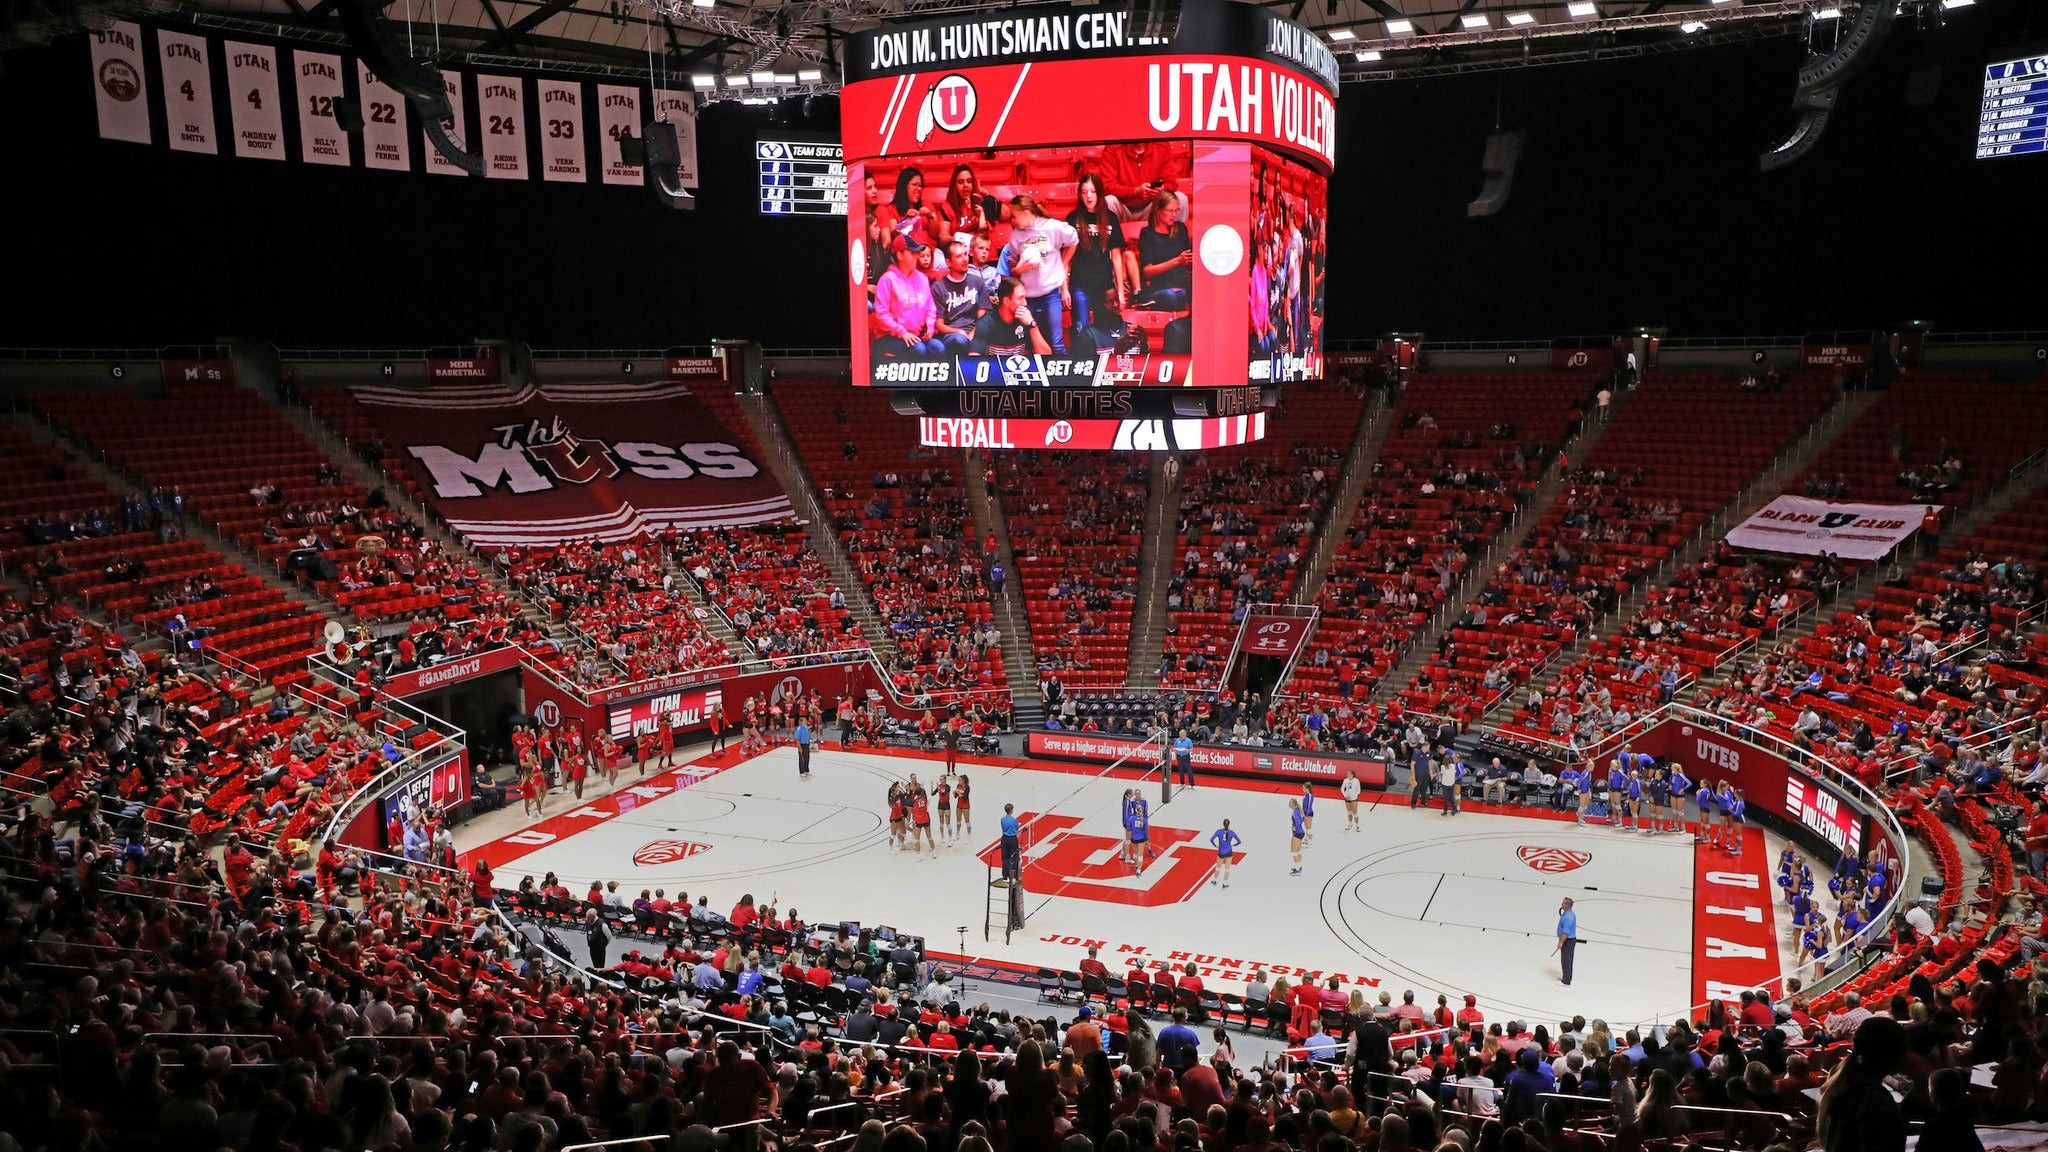 2020 Utah Women's Volleyball Full Season Tickets